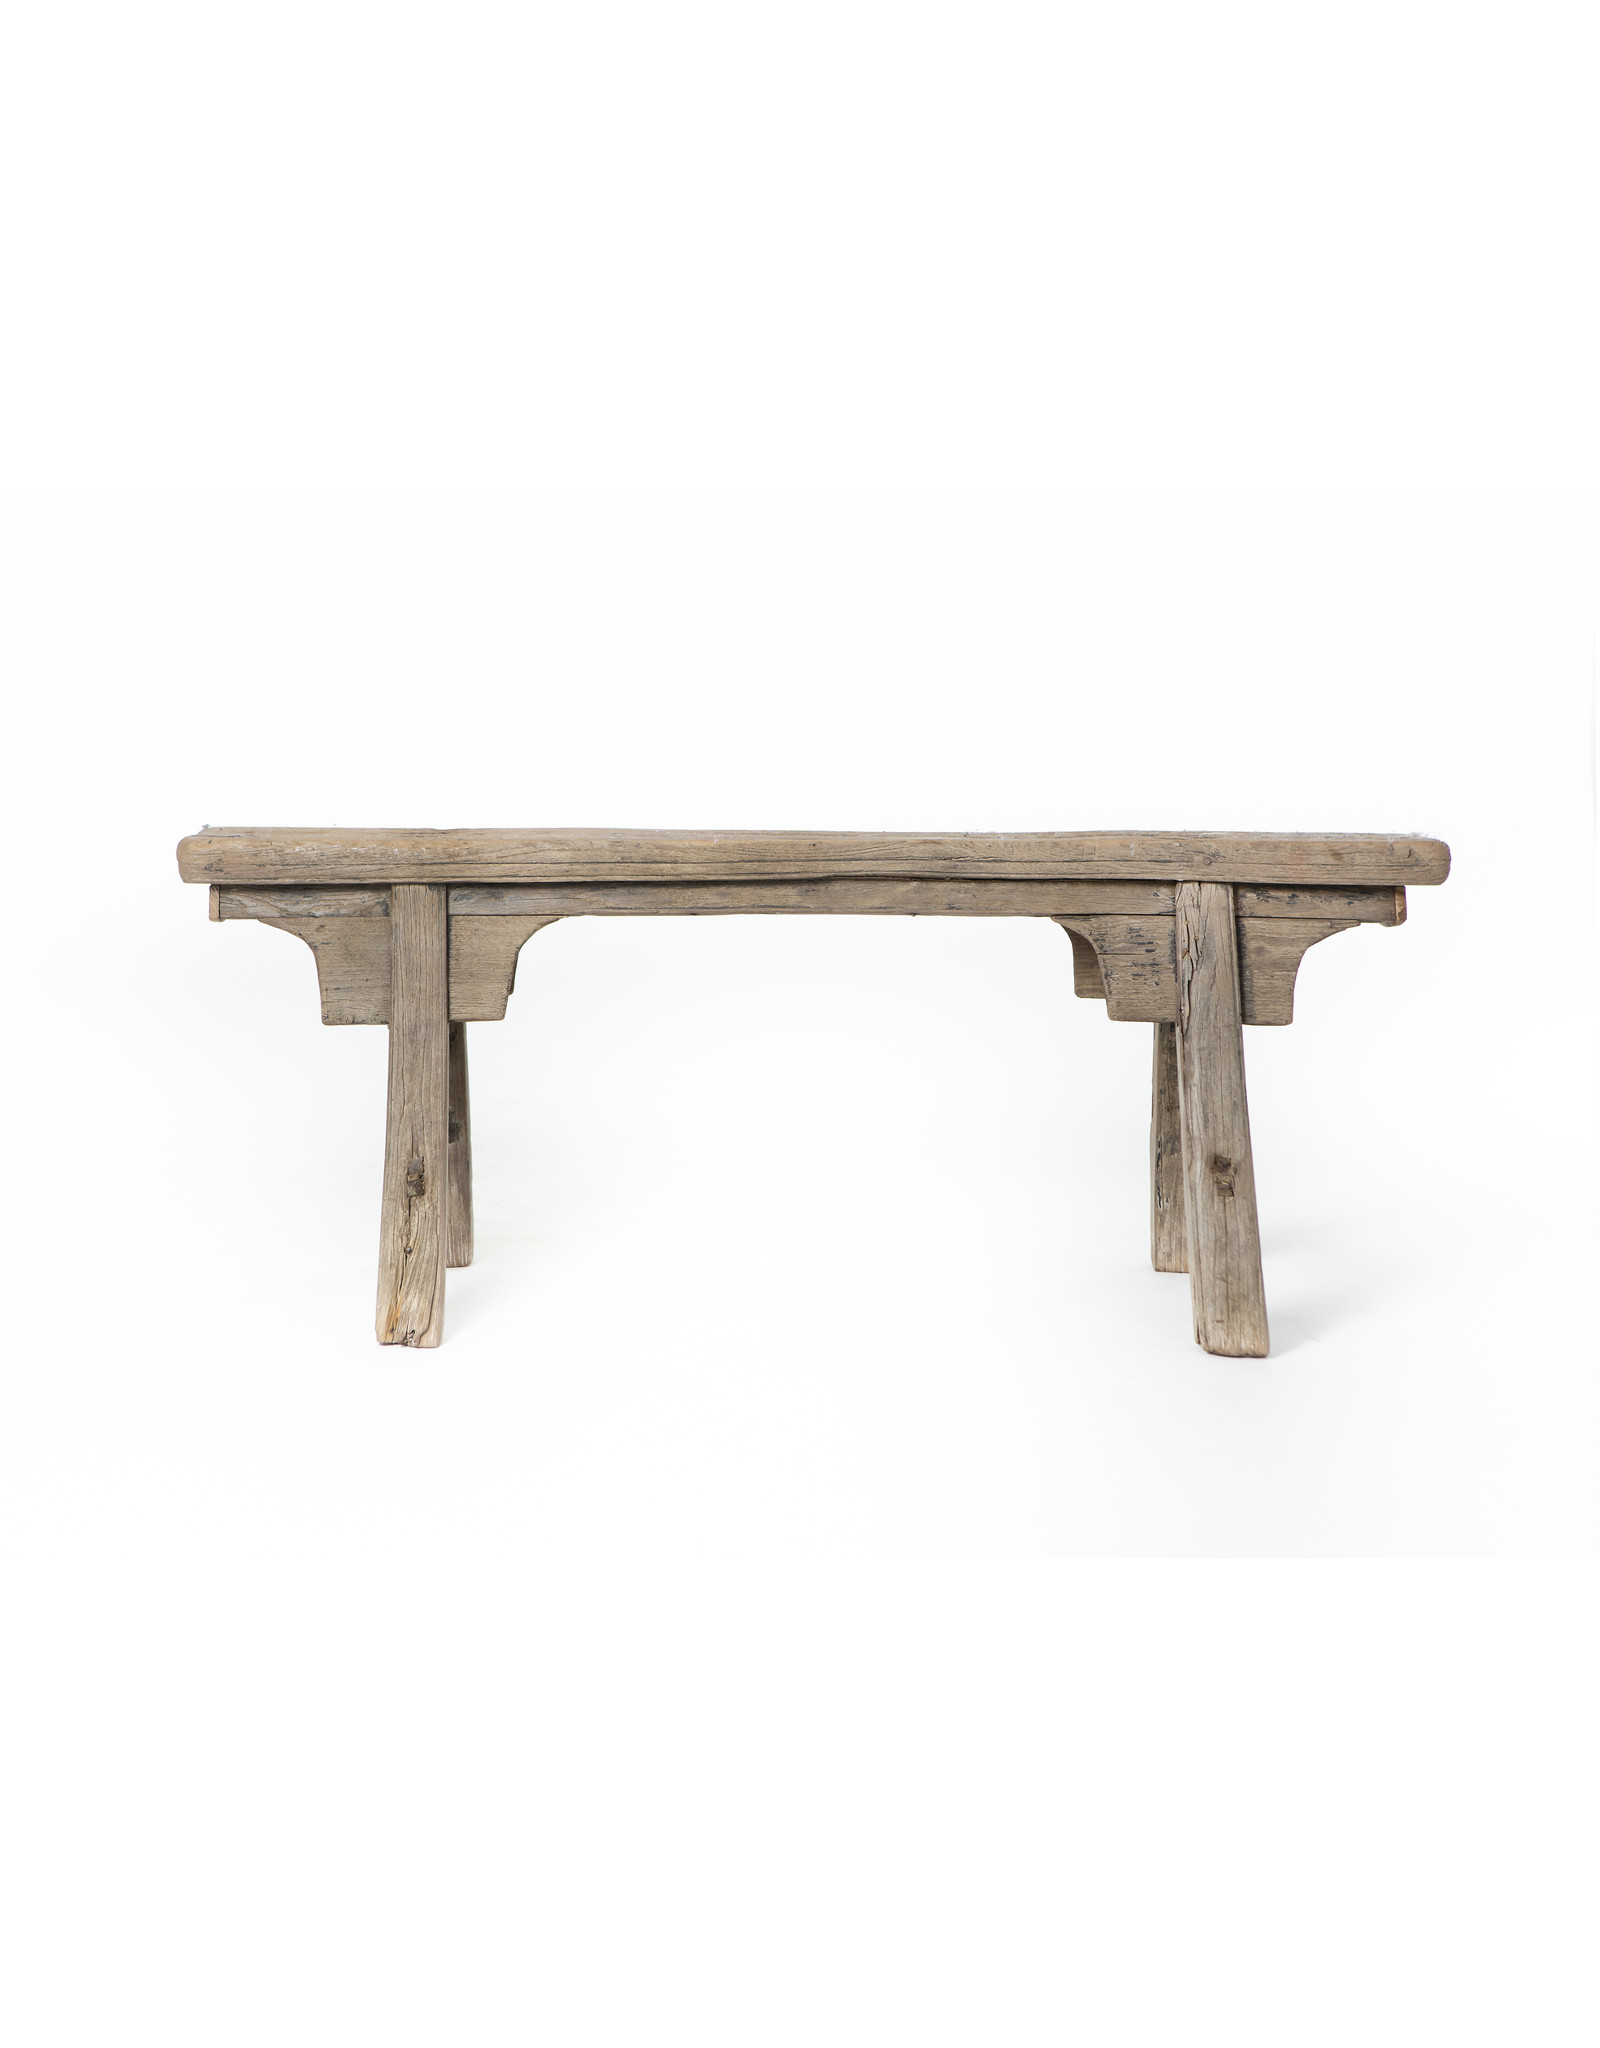 Antique Chinese wooden bench